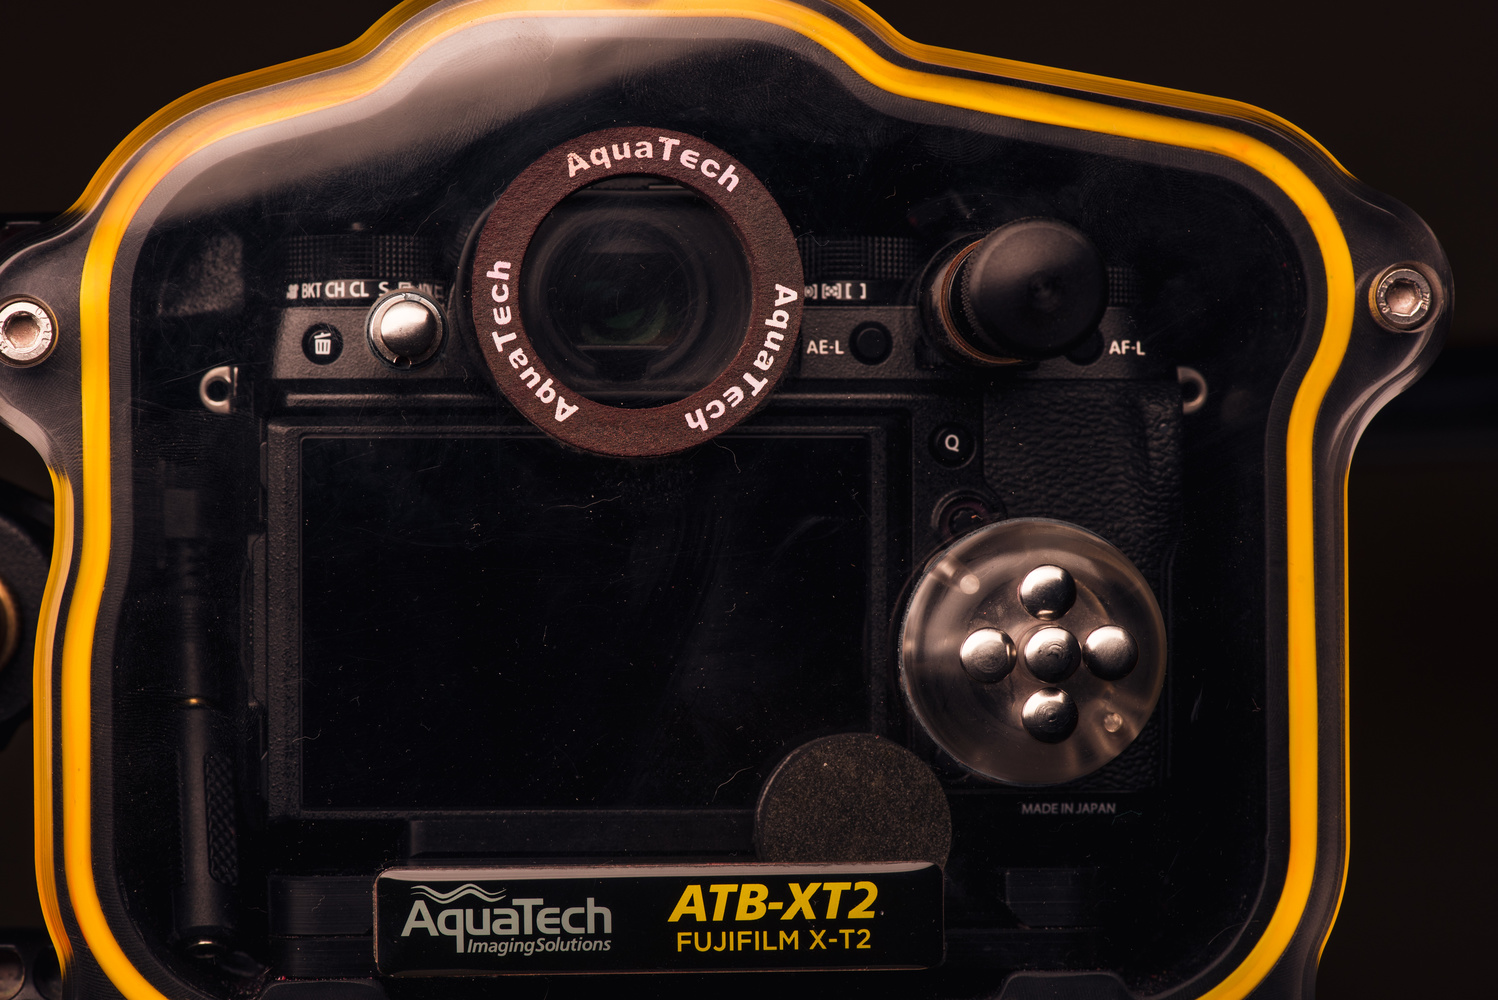 Fstoppers Reviews the Aquatech Underwater Housing for the